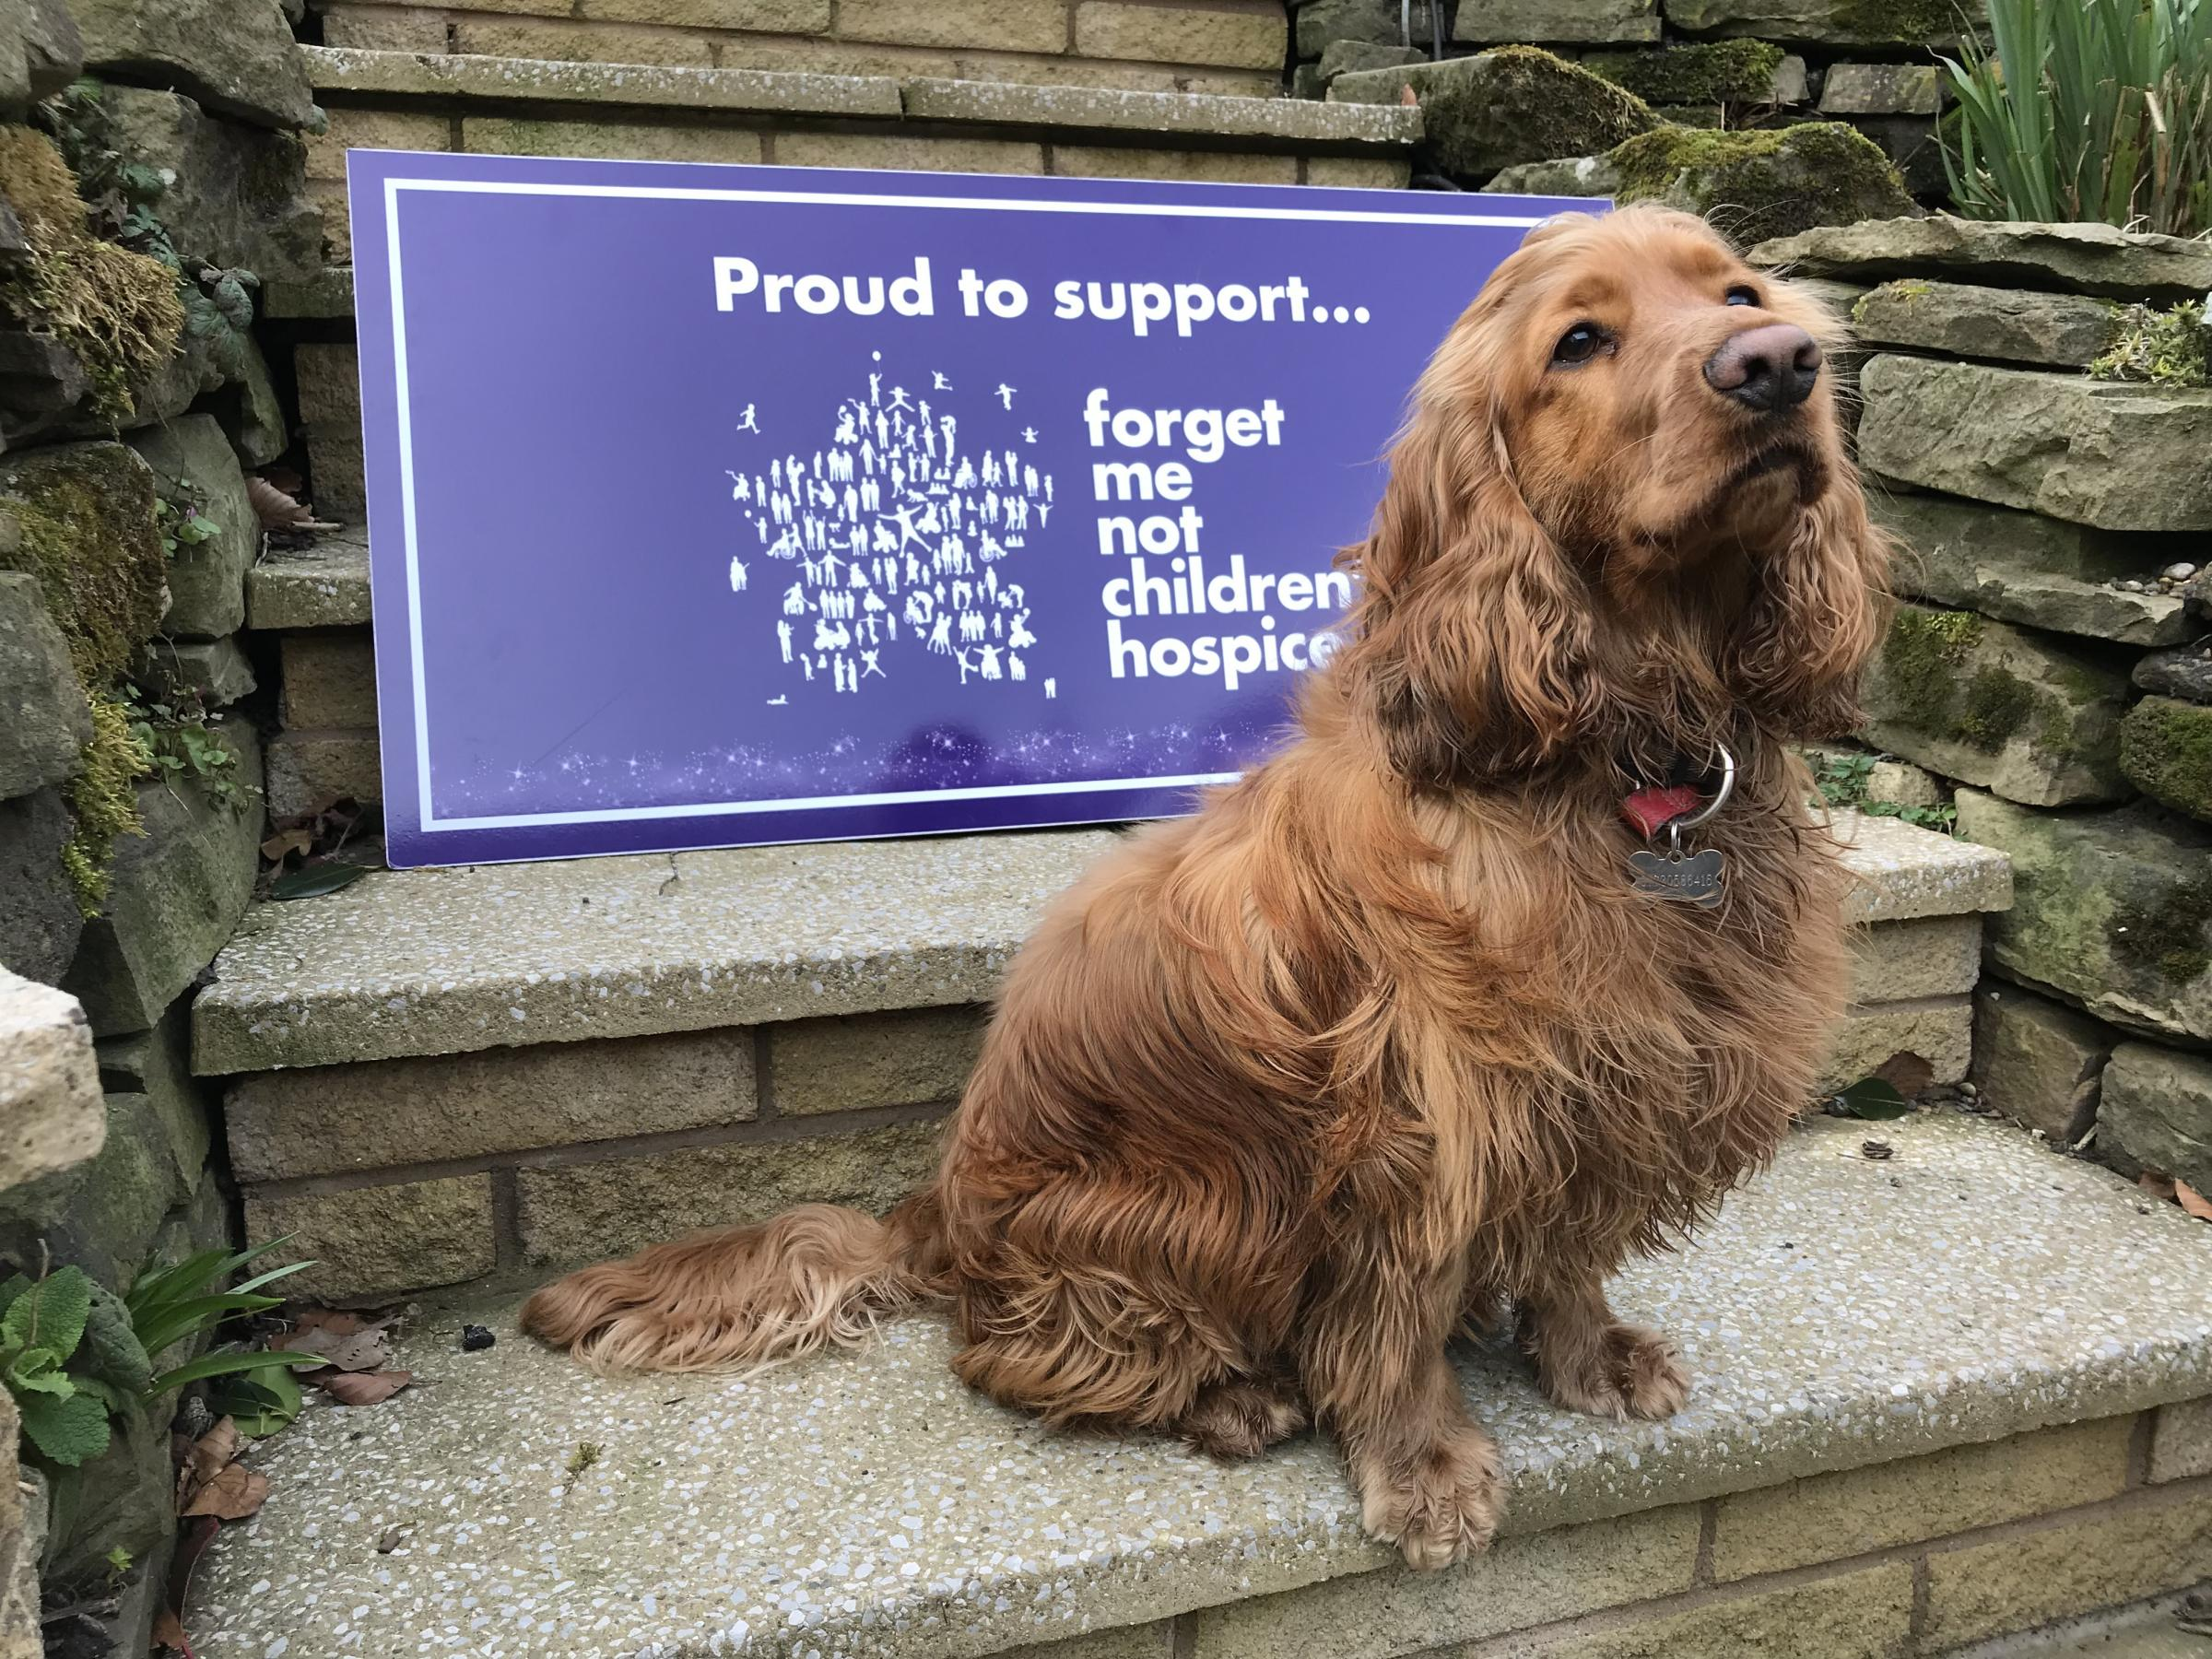 INVITATION: Forget Me Not Children's Hospice is hosting a Bark in the Park event to raise funds